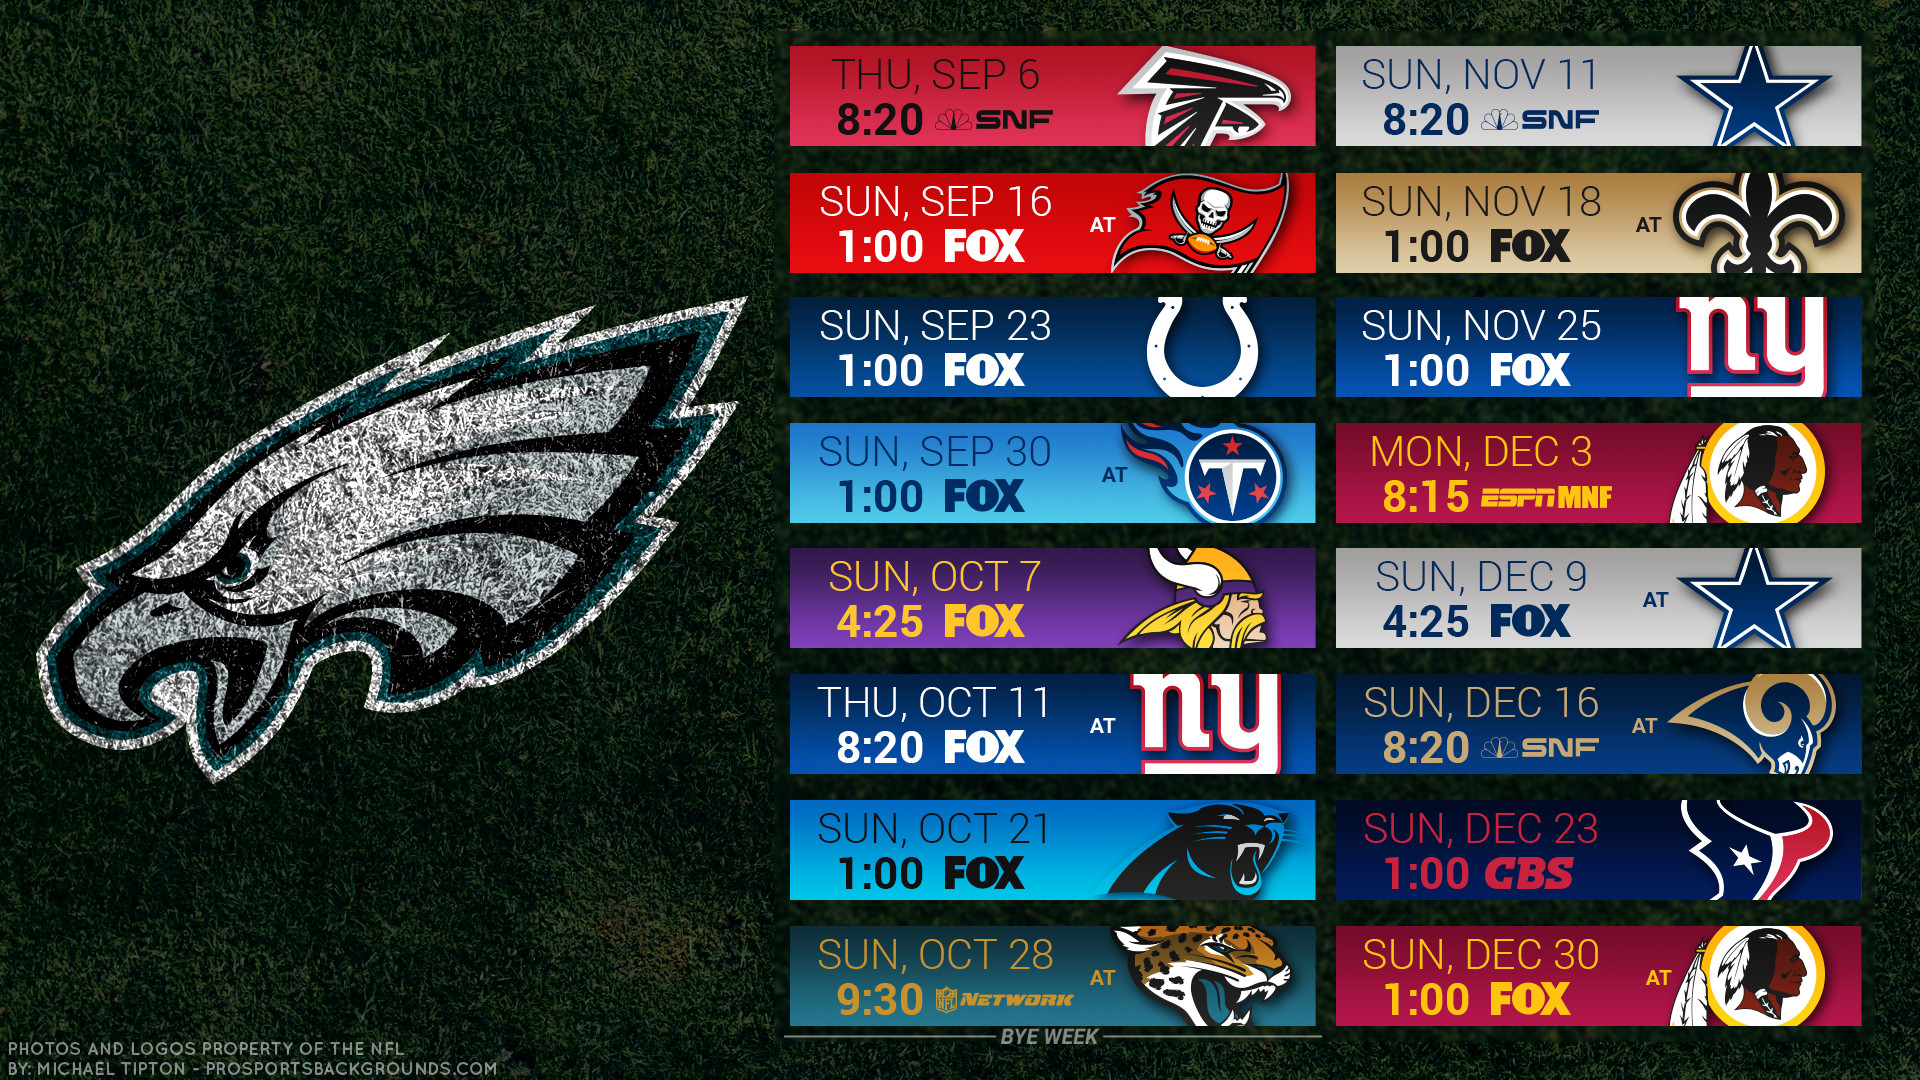 1920x1080 Philadelphia Eagles 2018 schedule turf football logo wallpaper free pc  desktop computer